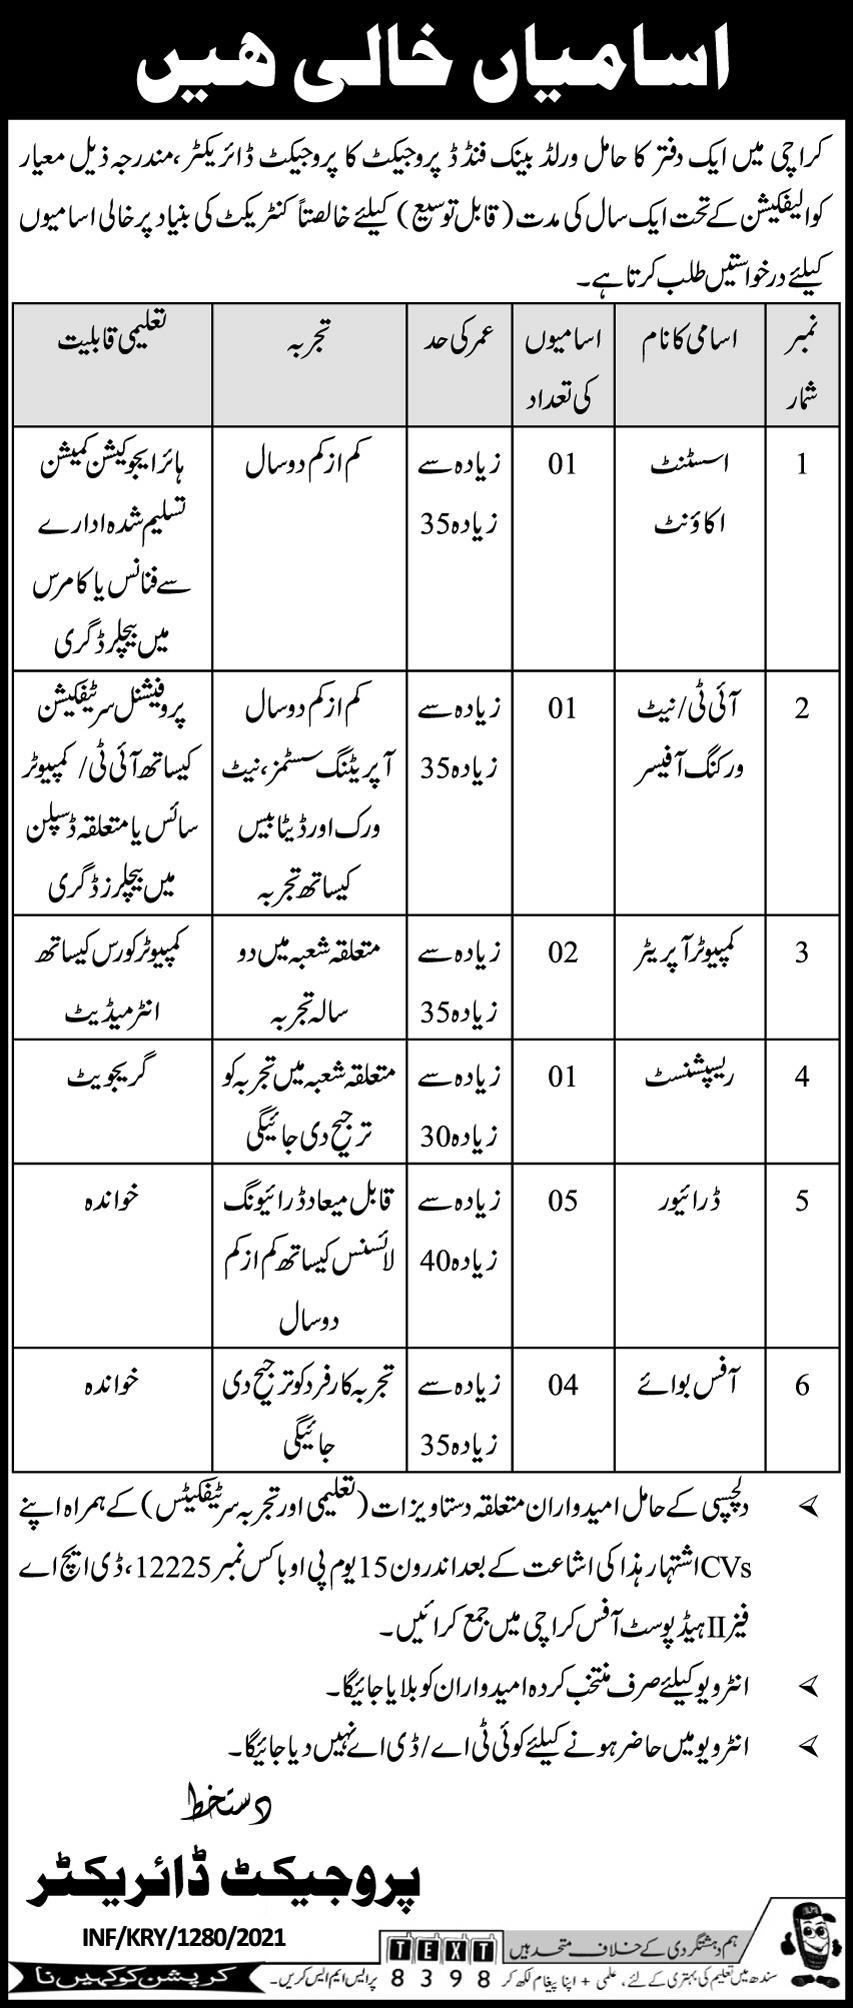 World Bank Funded Project Karachi Jobs 2021 for Assistant Accountant, IT Officer, Networking Officer, Computer Operator, Receptionist and more